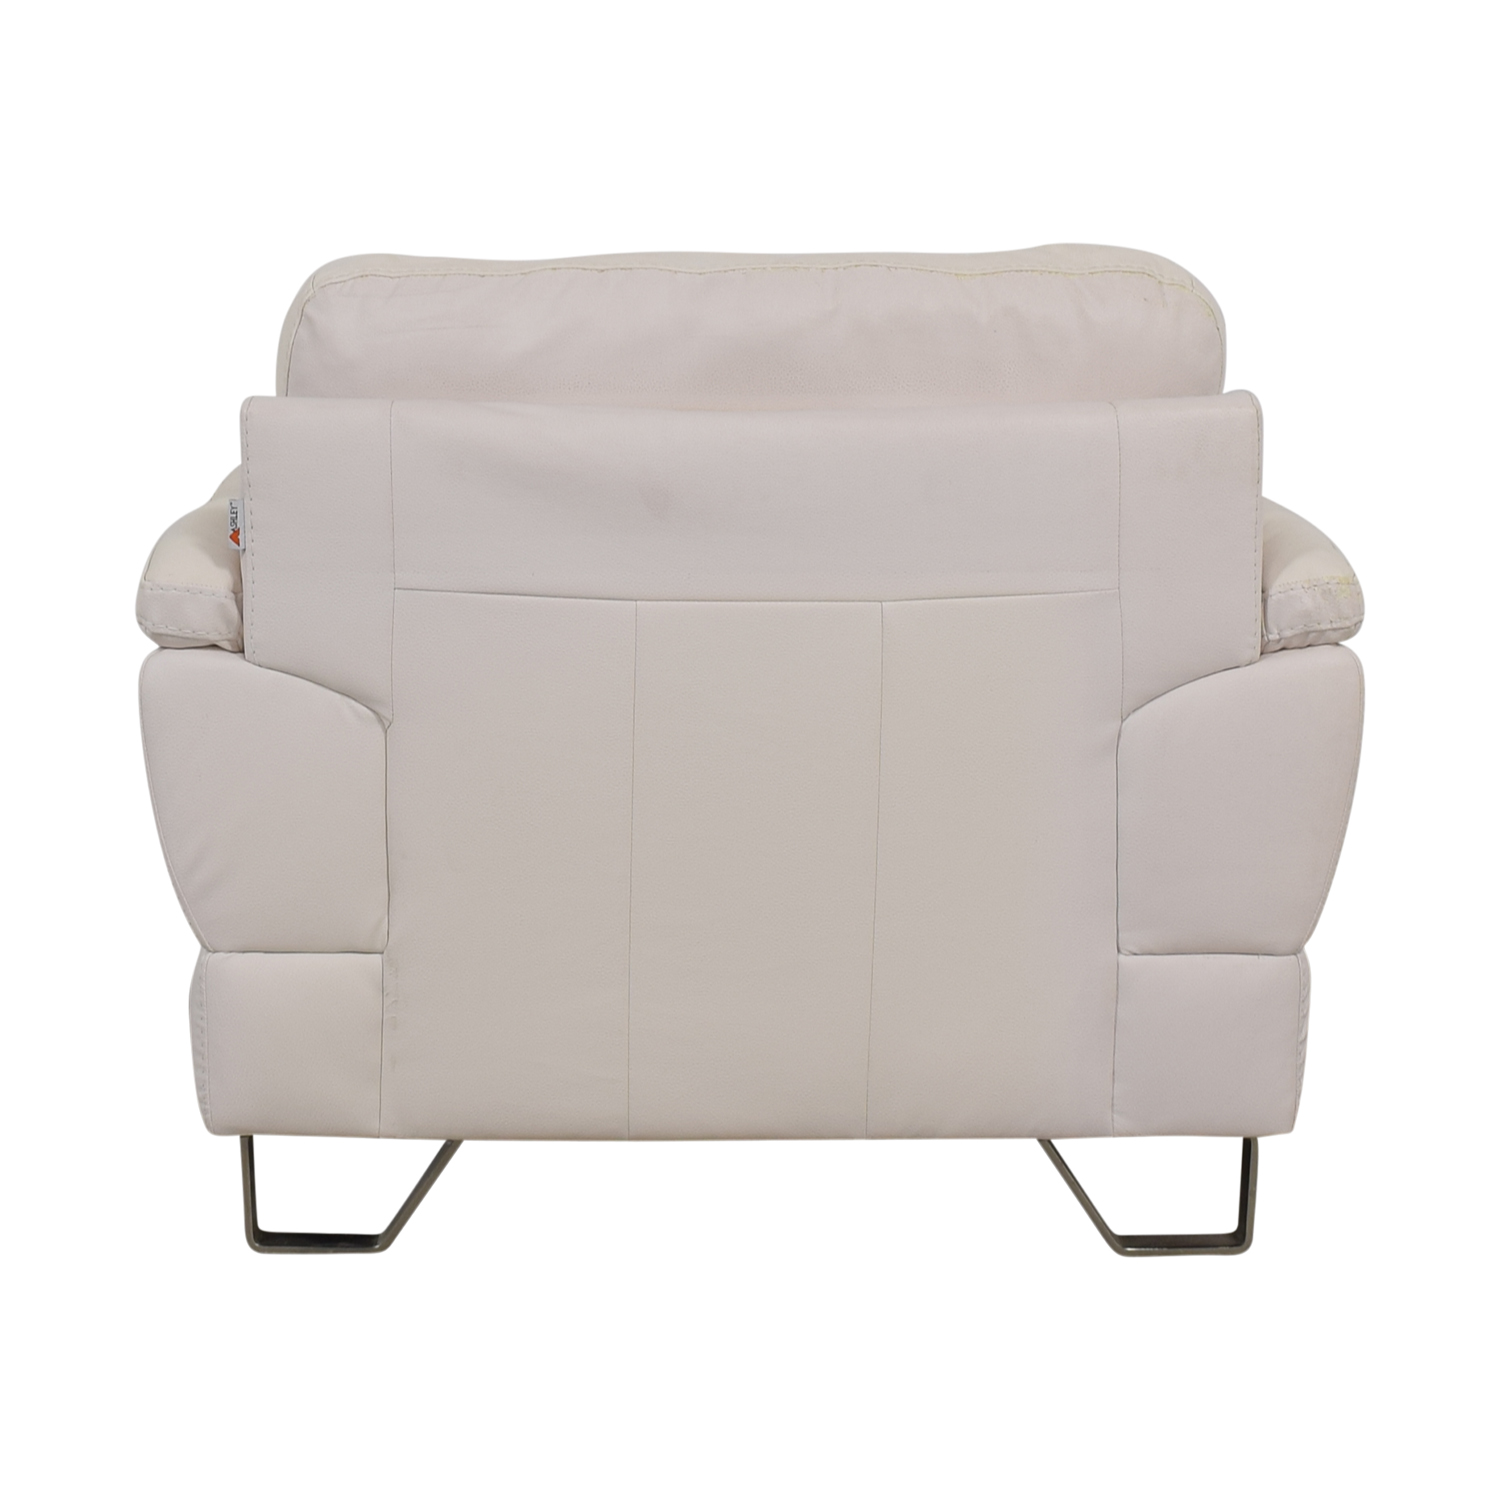 buy Ashley Furniture Ashley Furniture White Chair online